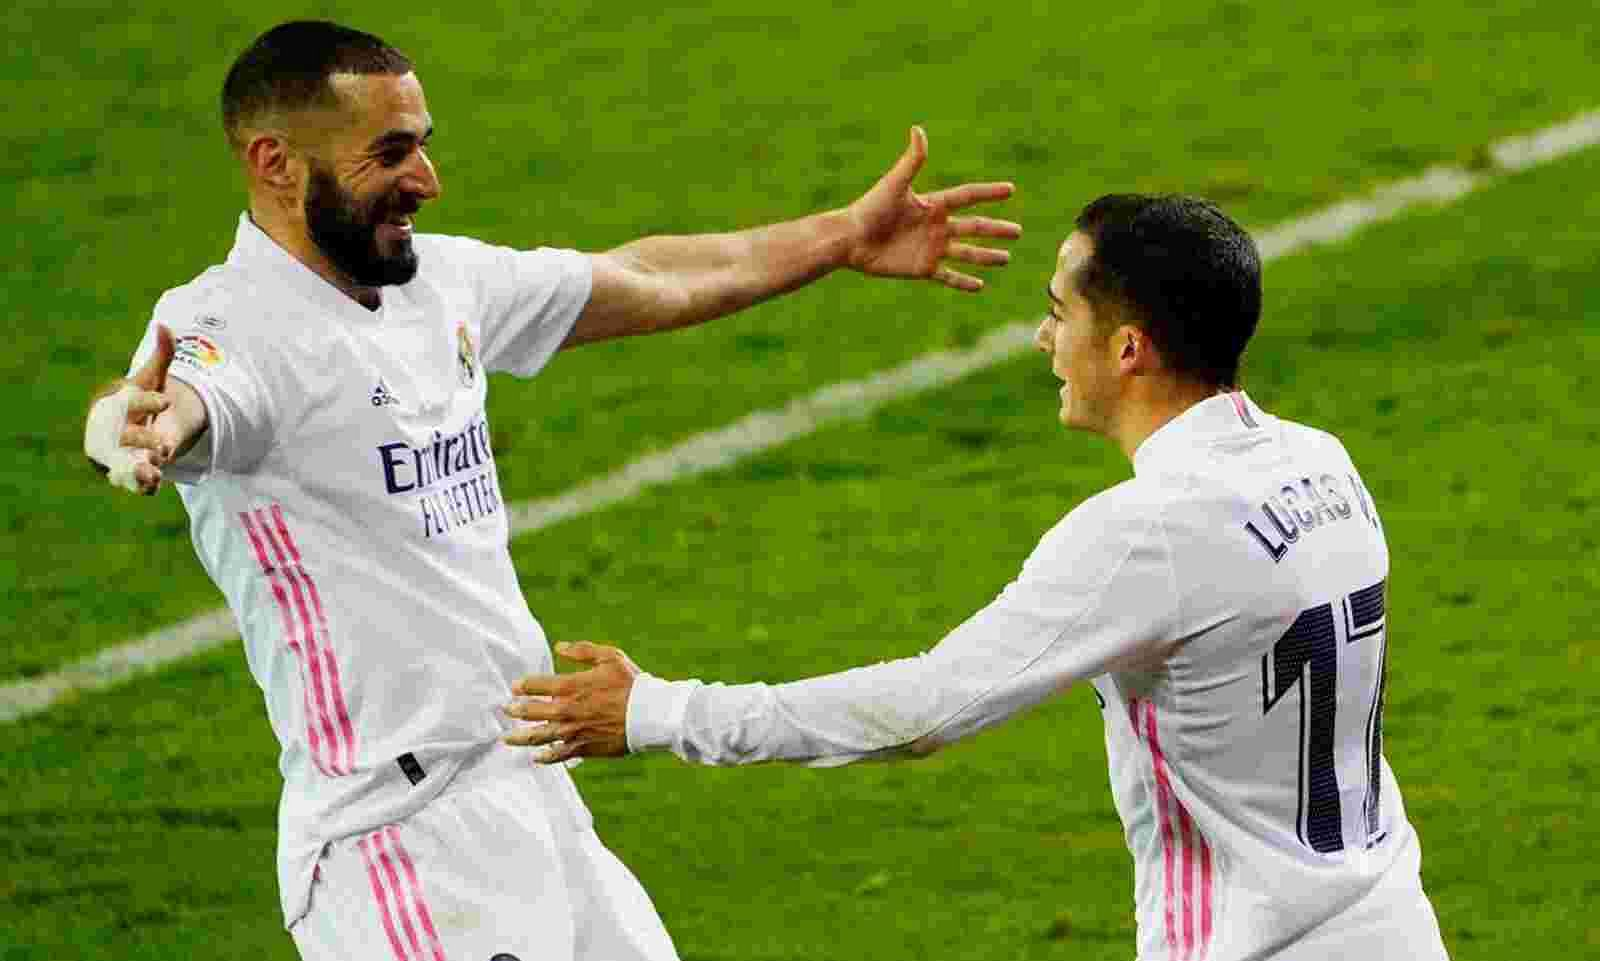 Karim Benzema helps Real Madrid win fifth game in a row - Sentinelassam